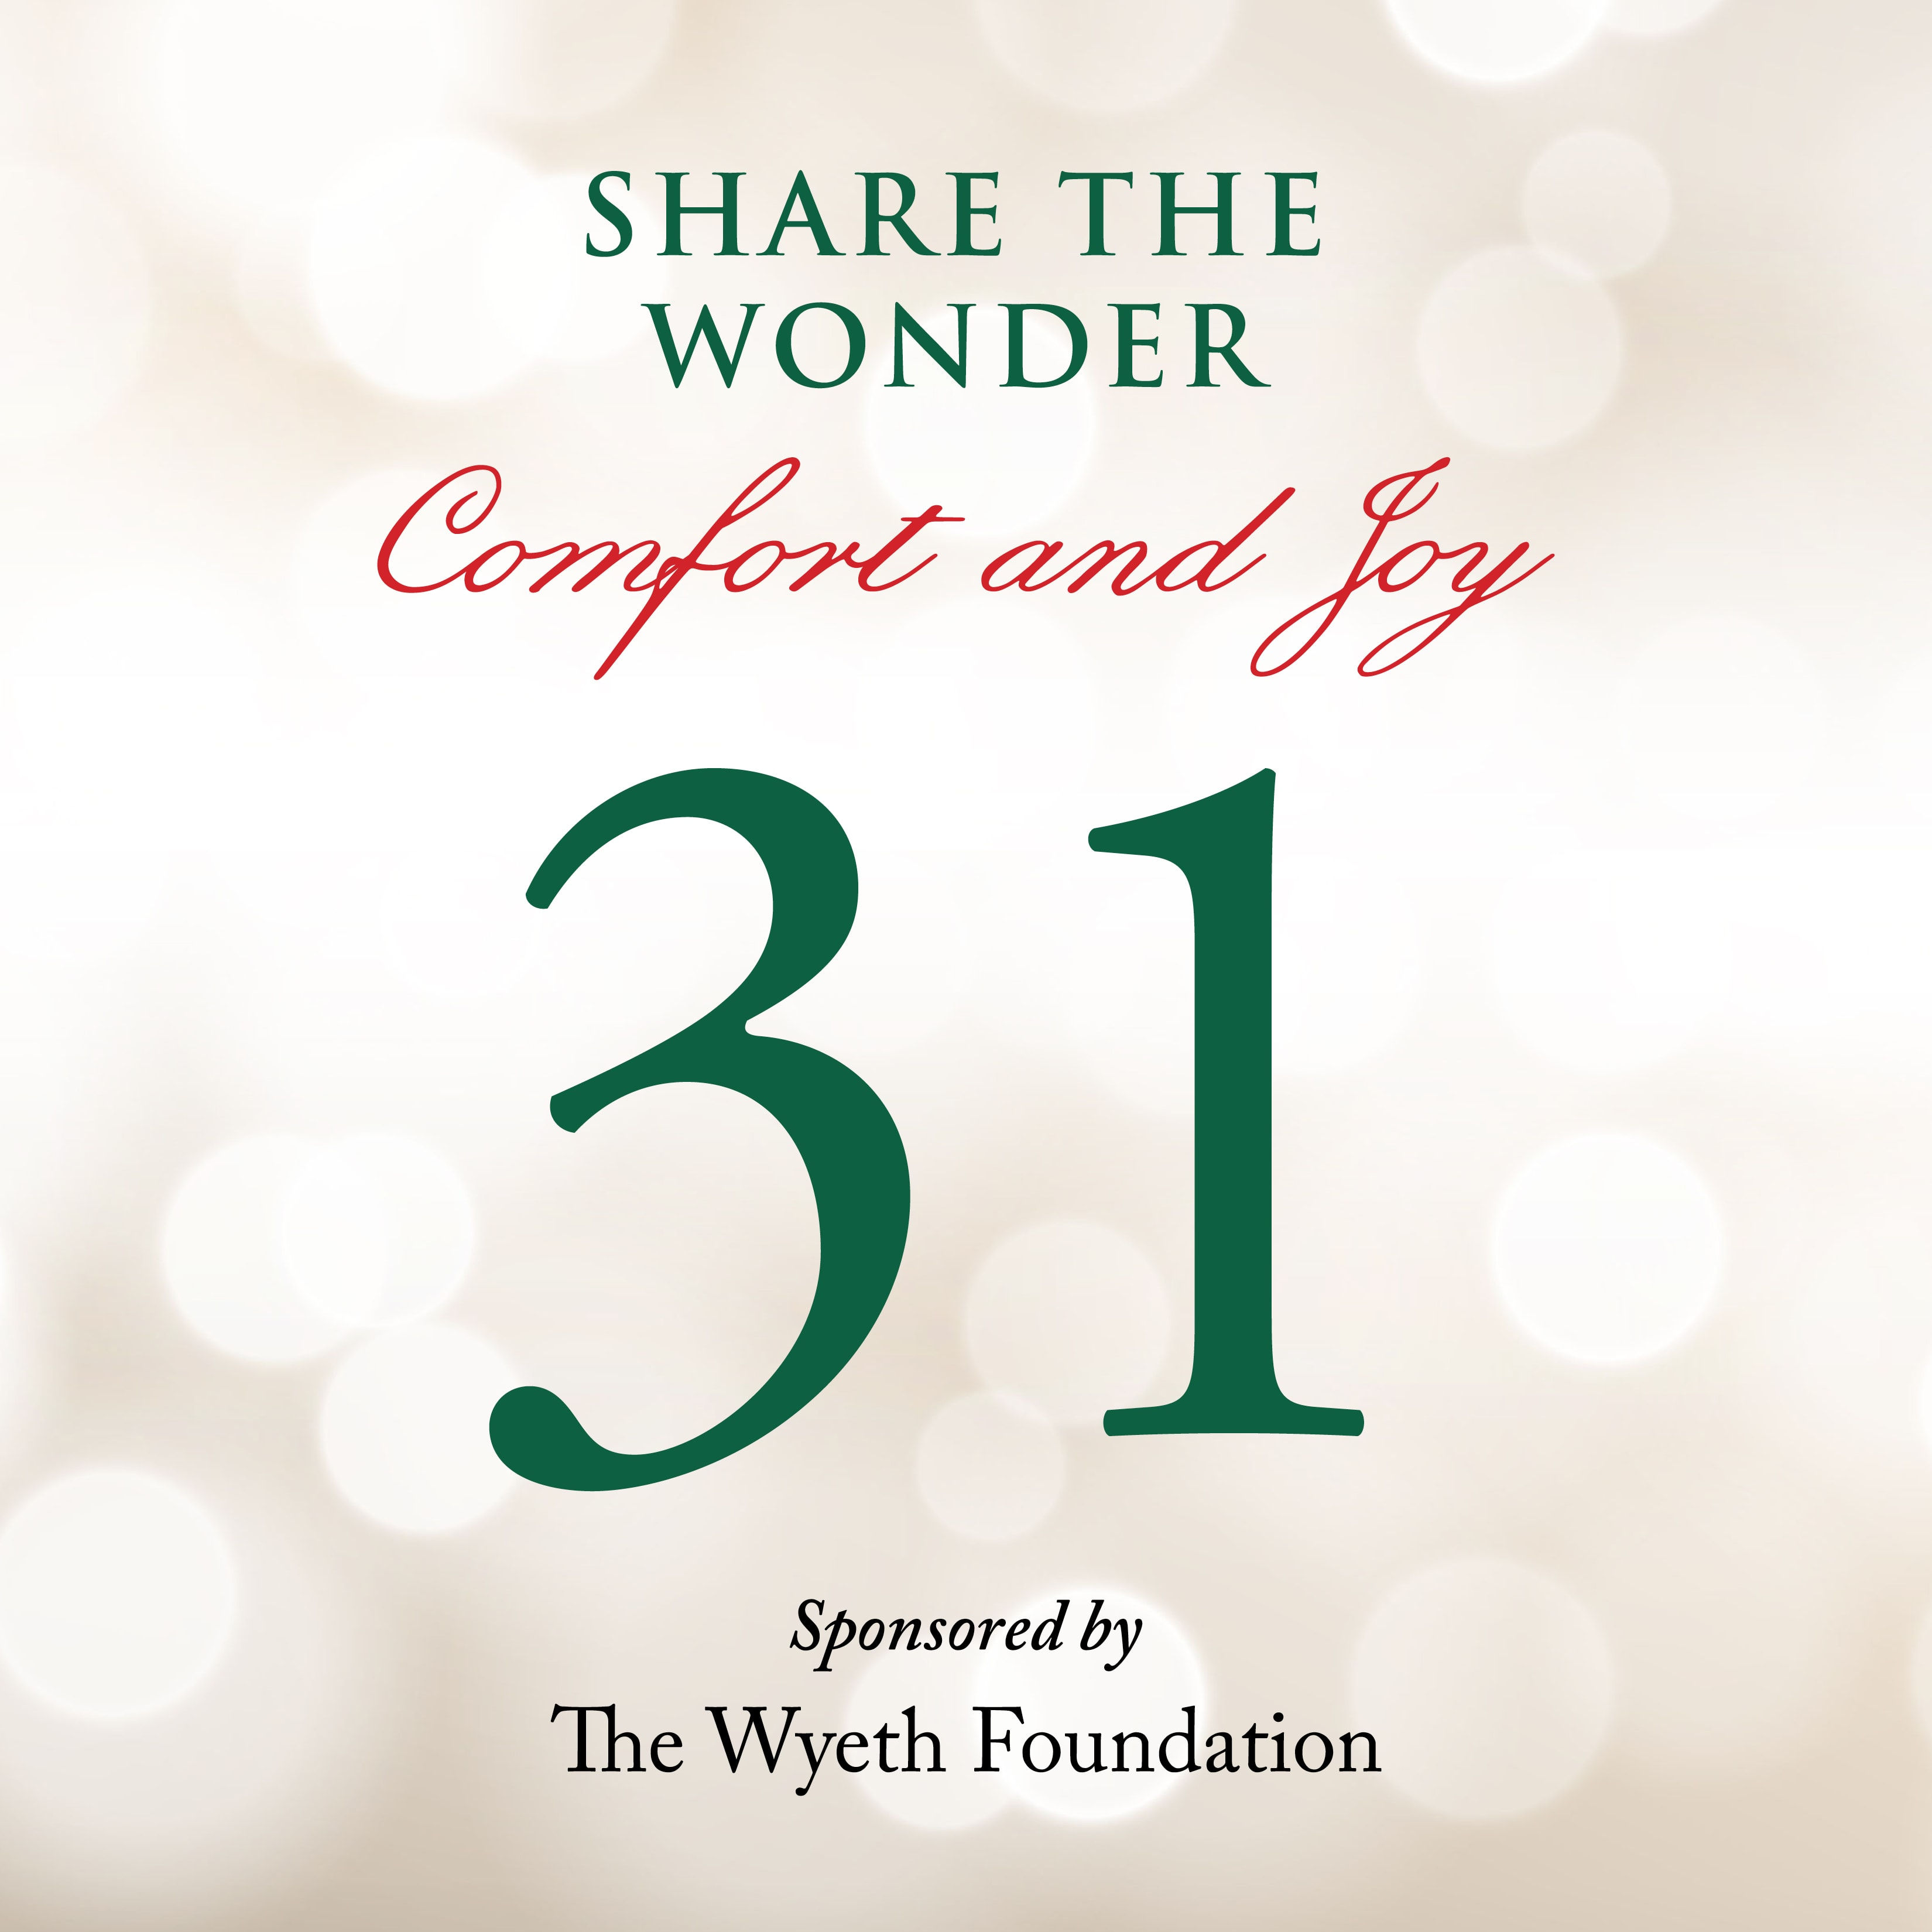 Day 31 of Share the Wonder: December 28